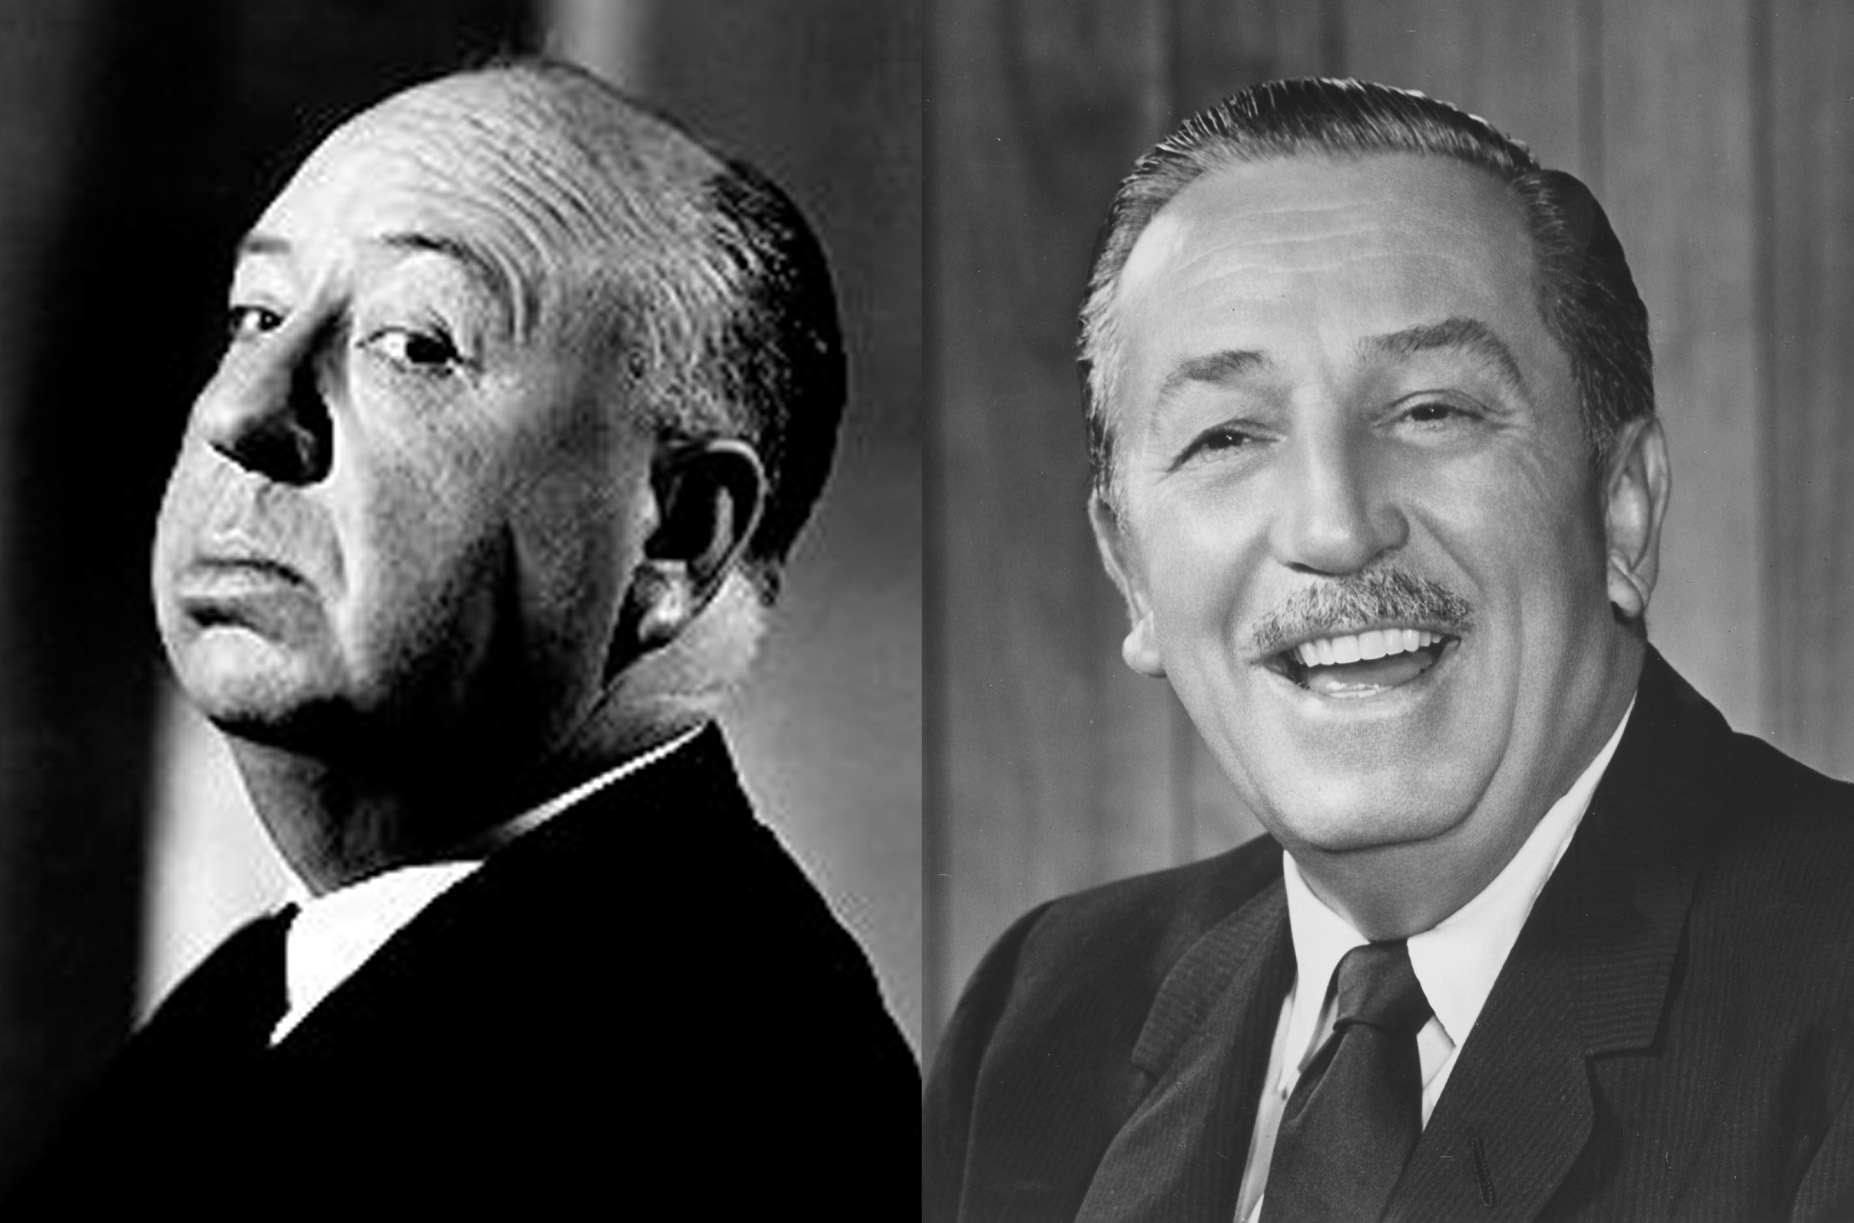 Walt Disney didn't get along with Alfred Hitchcock